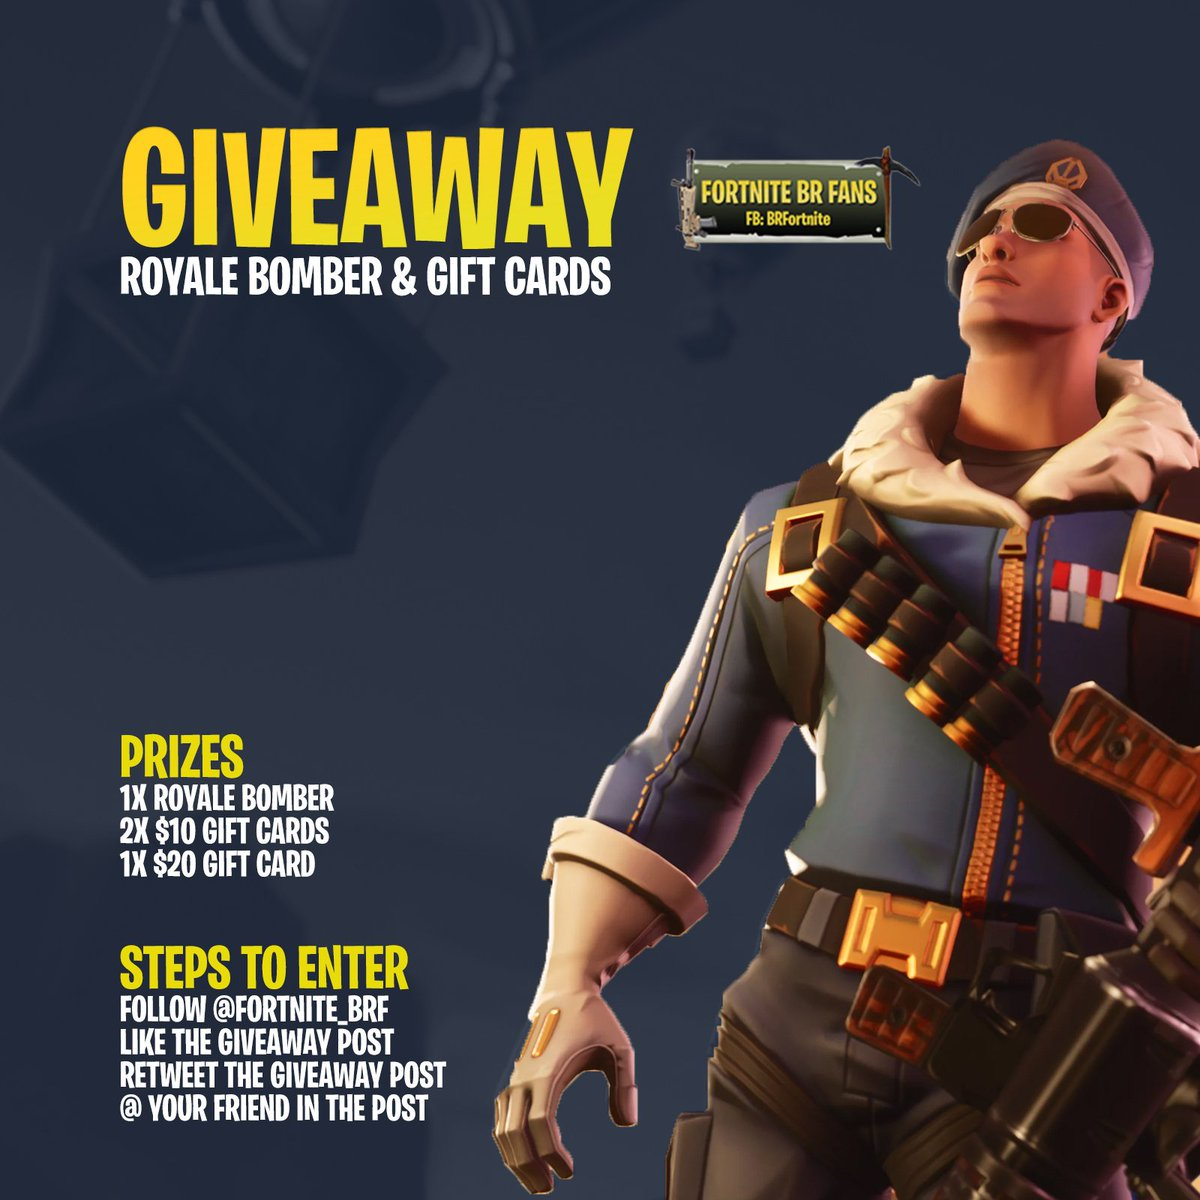 After giving away $10K on our FB page, it is time for our first Twitter giveaway!  The giveaway ends on Sunday, August 26, and we will post winners on our page. Additionally, we will try to find a way to do a LIVE giveaway so you can watch it here!   #Fortnite  #FortniteGiveaway<br>http://pic.twitter.com/kbFddt7FSb